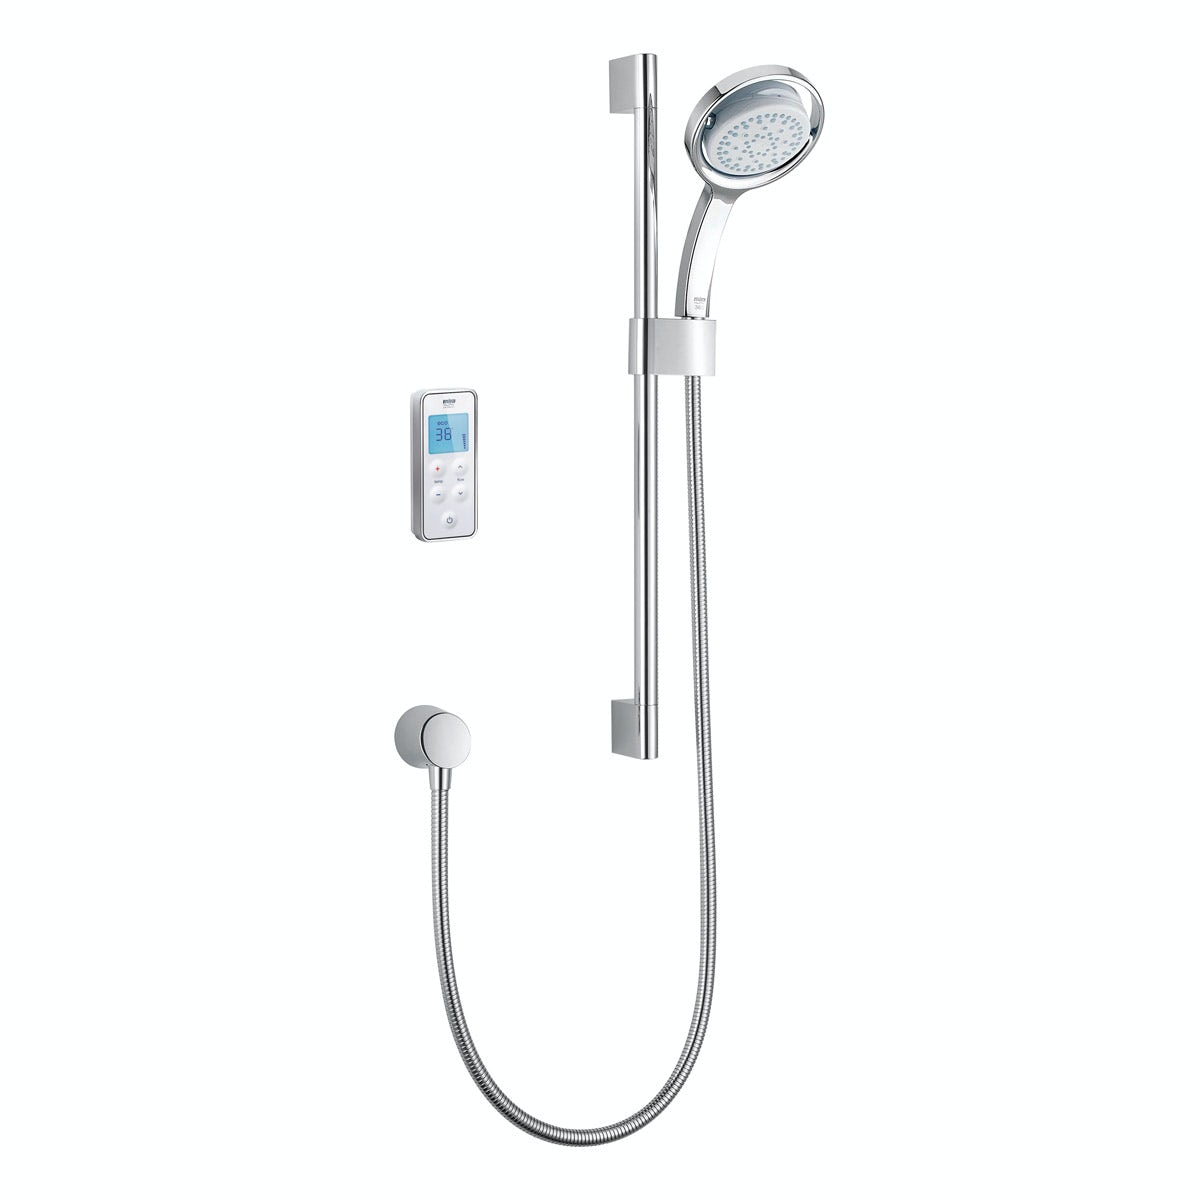 Mira Vision rear fed digital shower standard